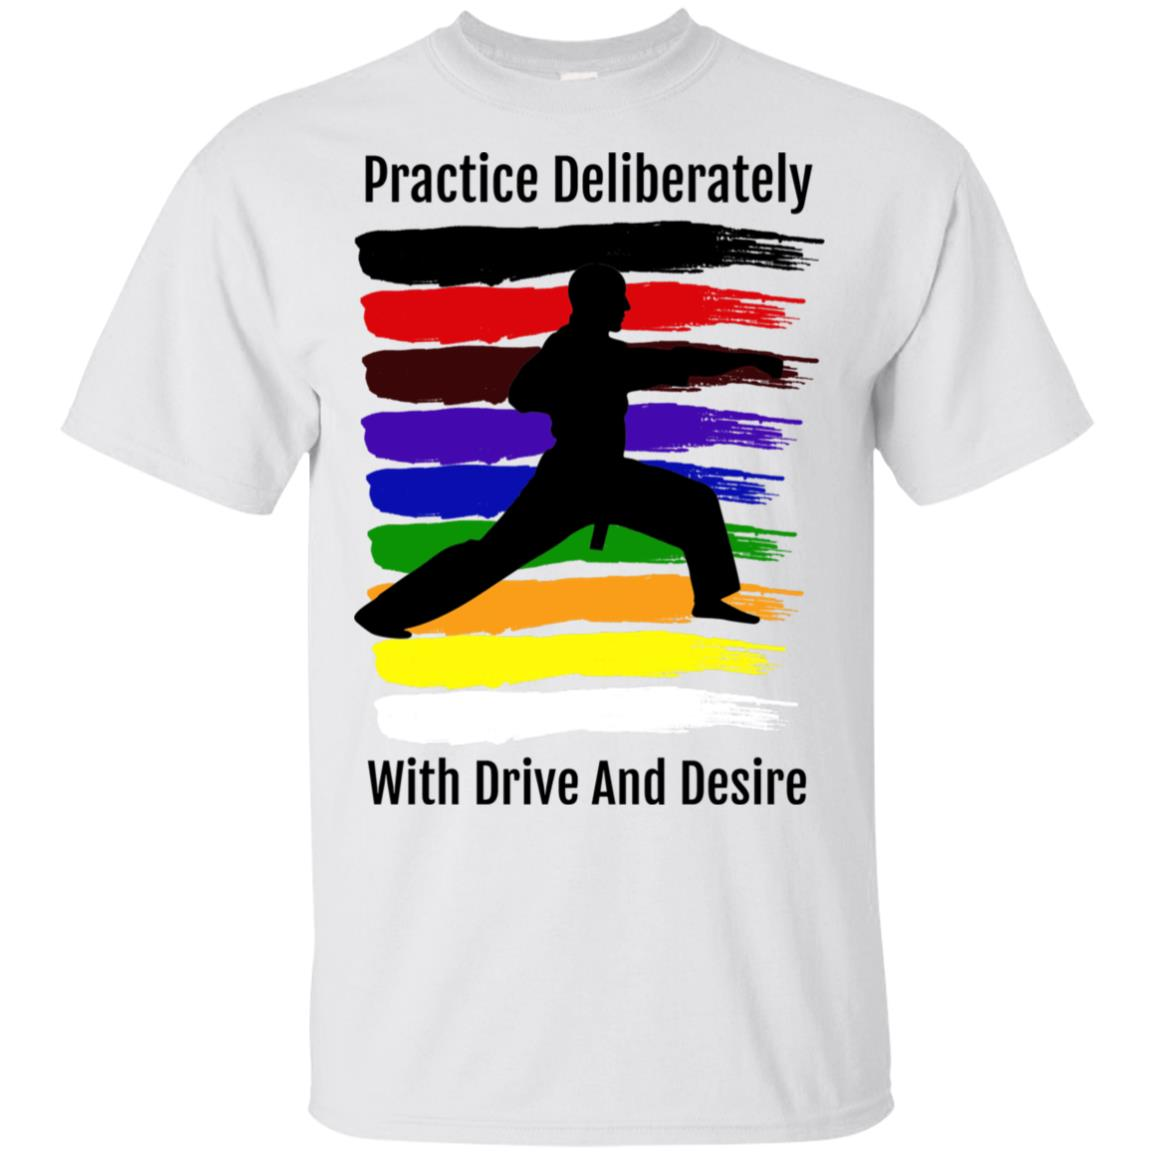 Practice Deliberately with Drive and Desire Unisex Short Sleeve